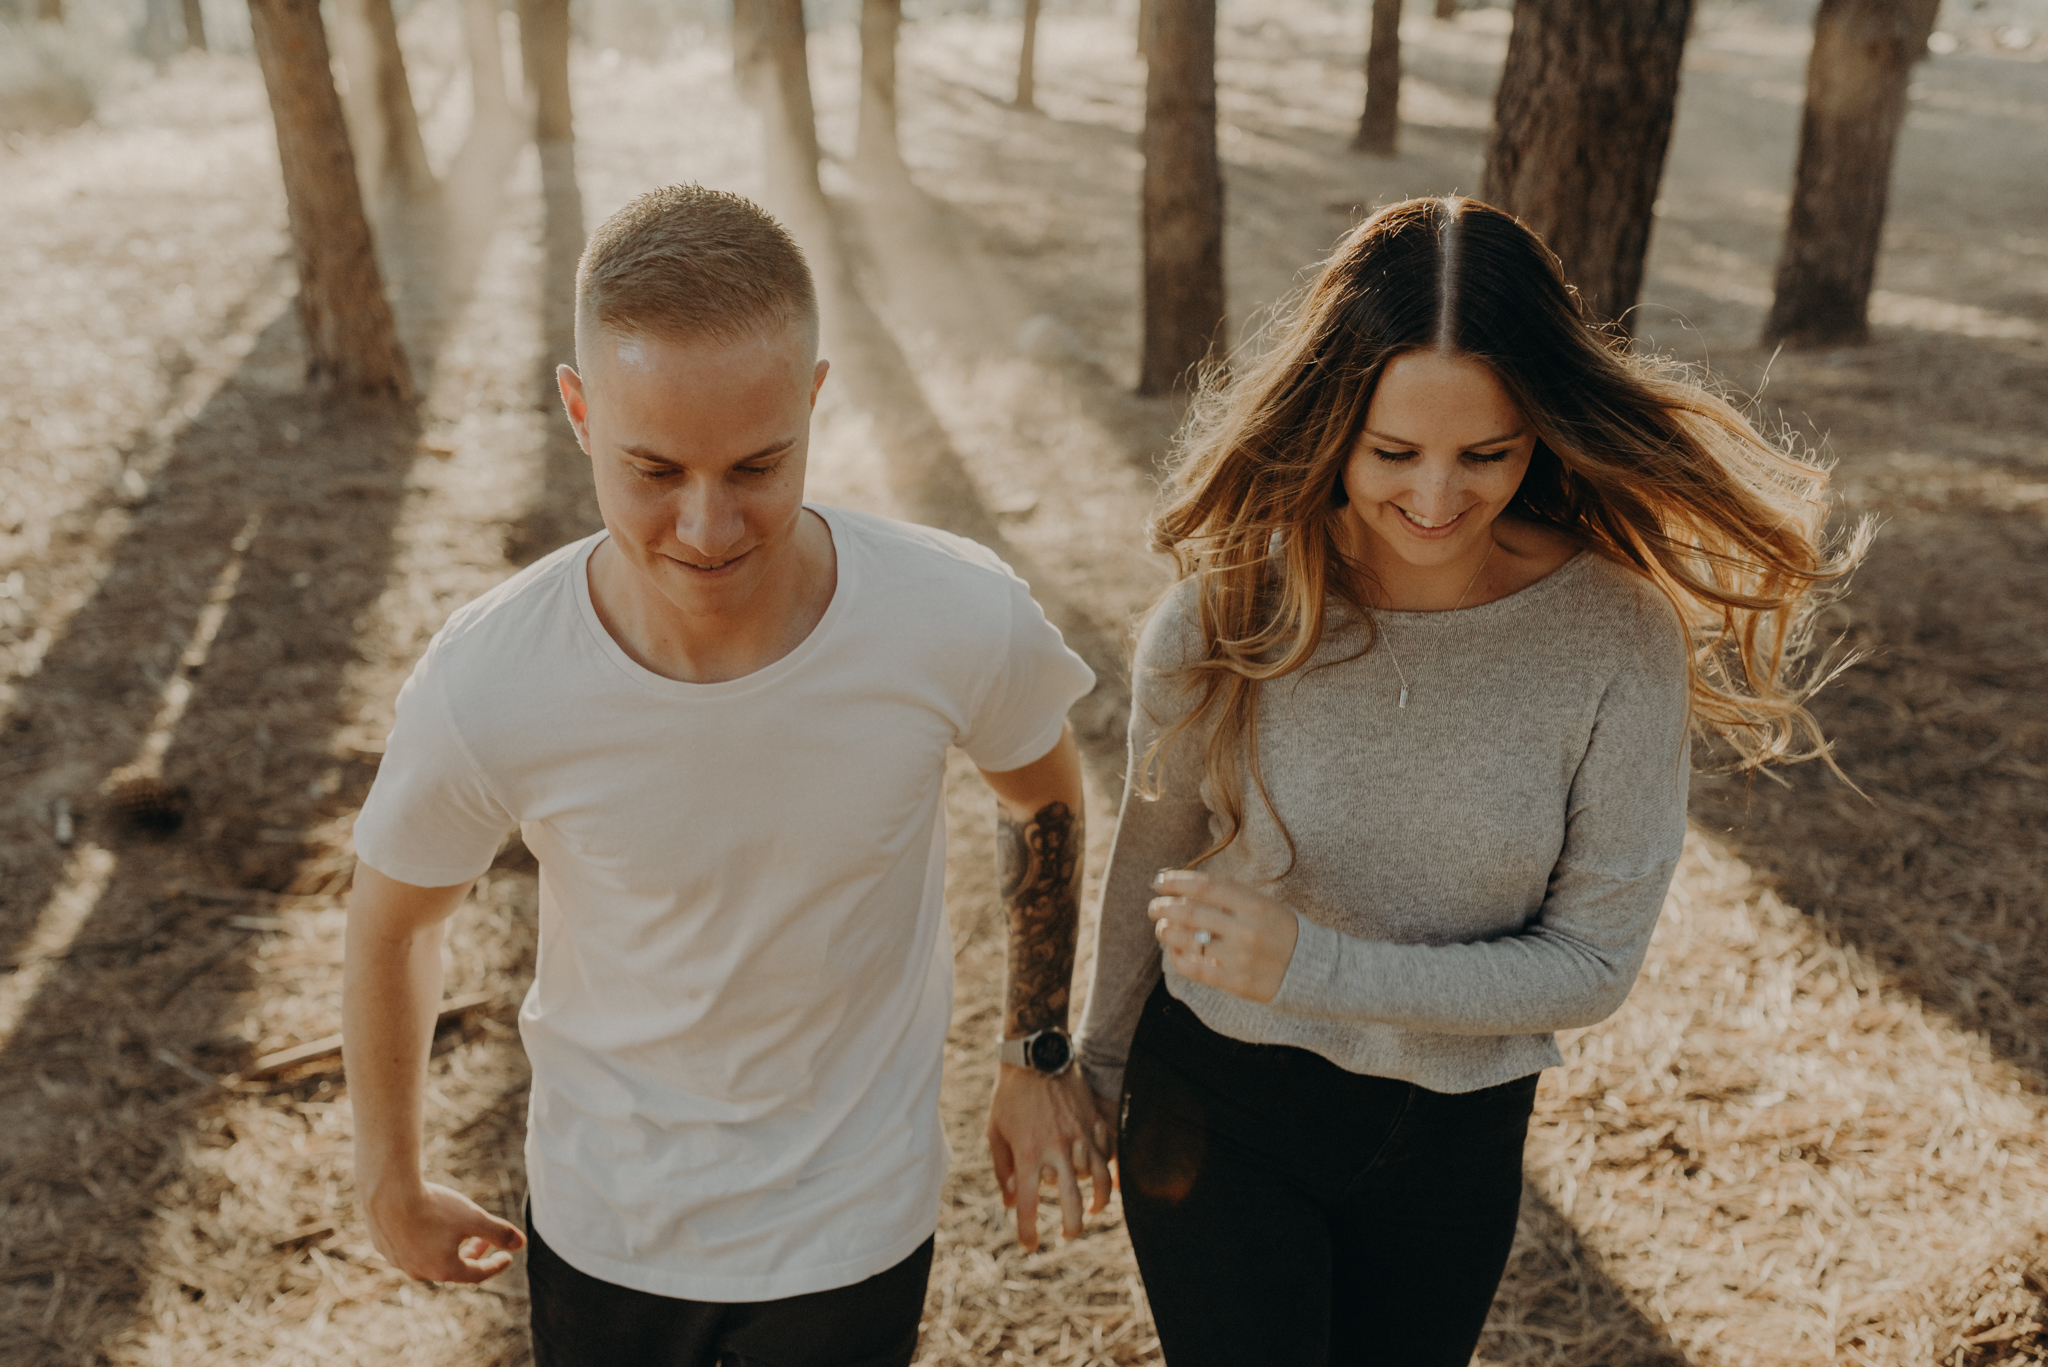 Isaiah + Taylor Photography - Los Angeles Forest Engagement, Laid-back Wedding Photographer-084.jpg